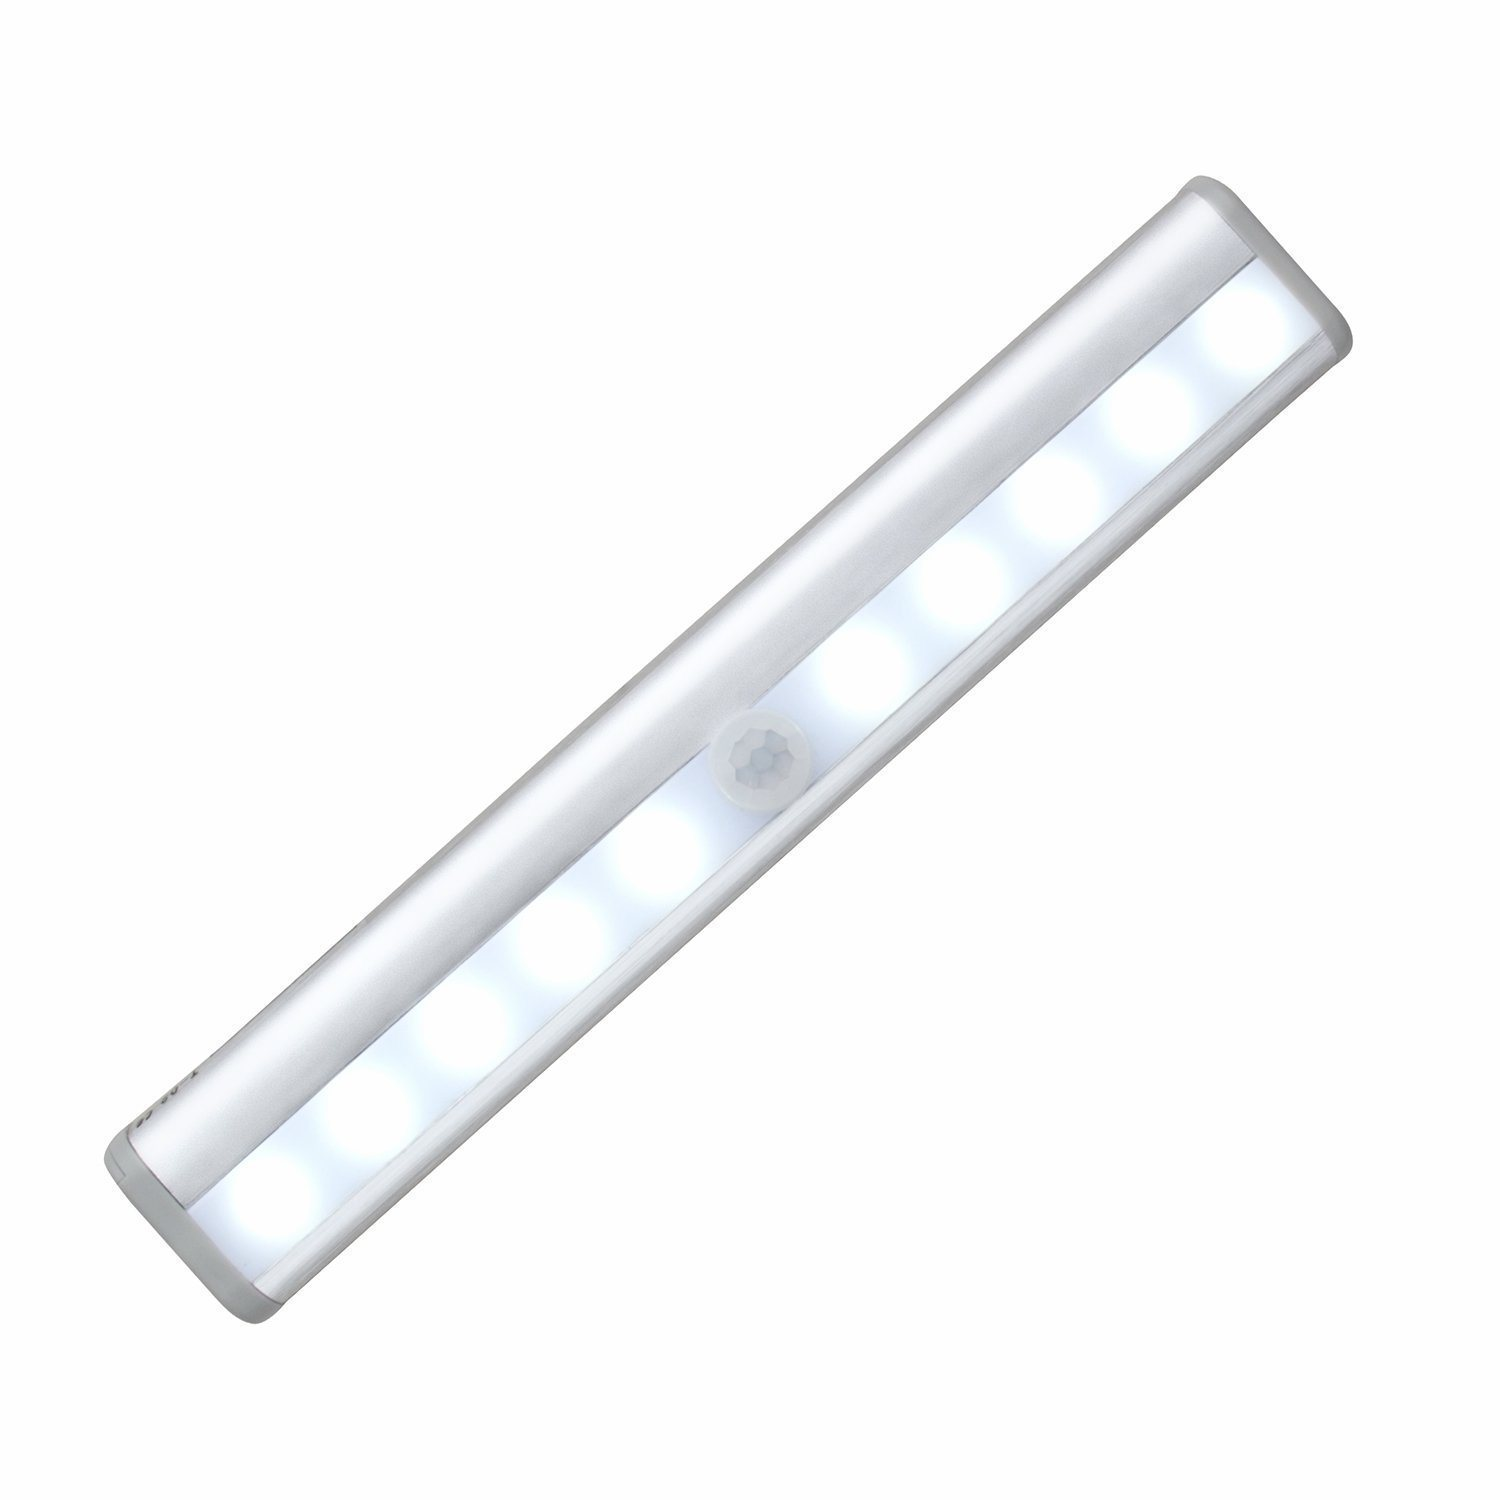 Stick-on Anywhere Portable 10 LED Wireless Motion Sensing Light Bar with Magnetic Strip (Battery Operated) - Silver